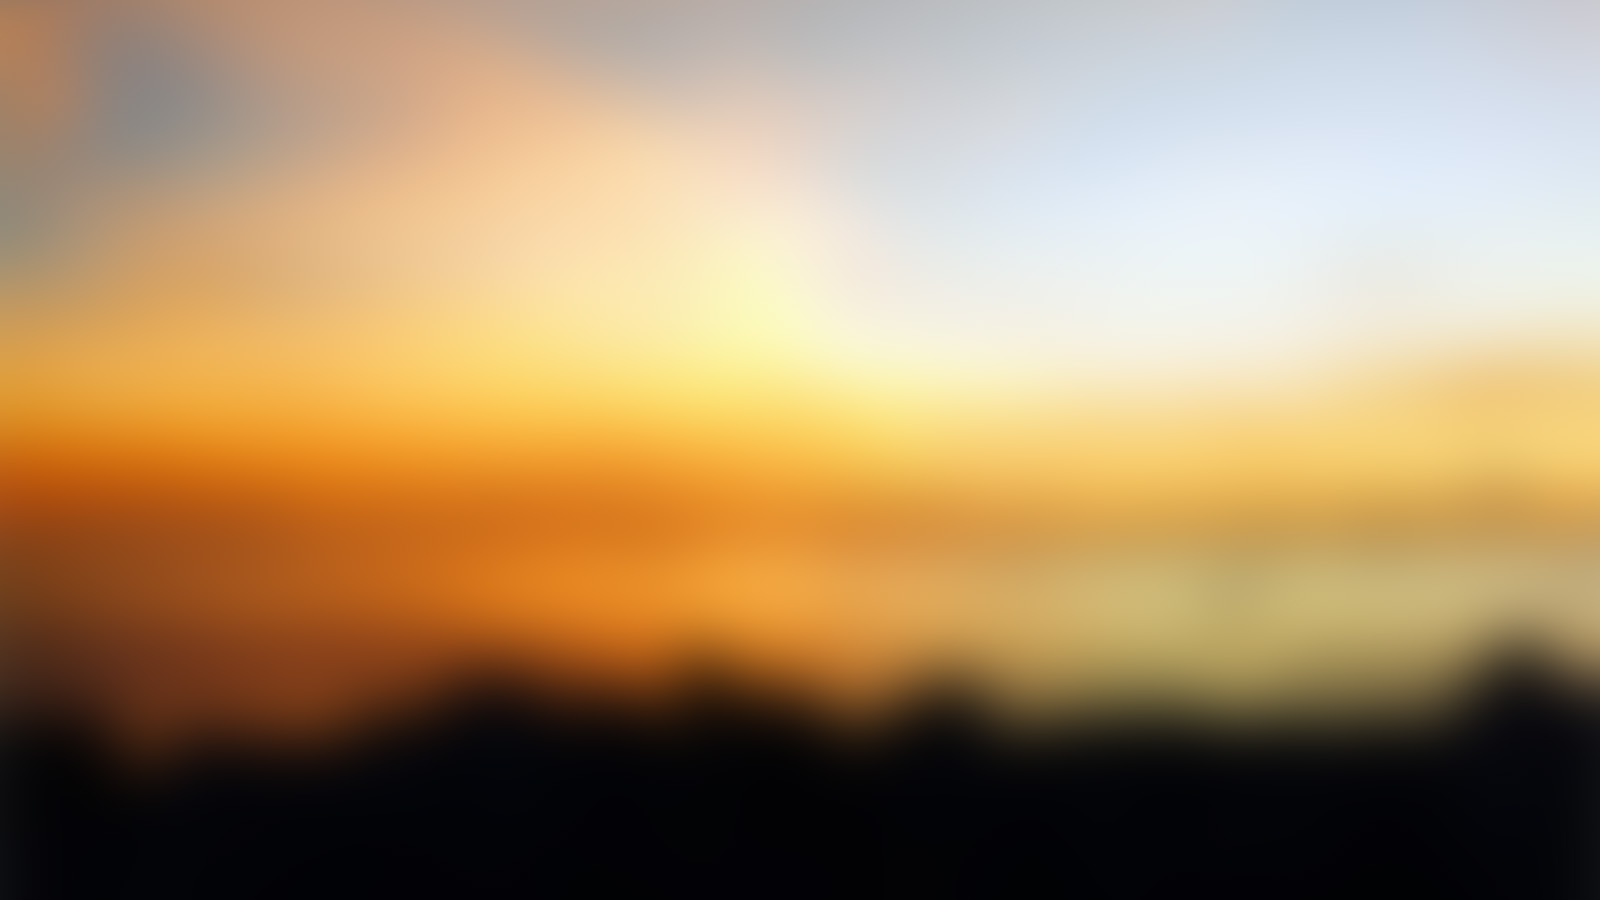 Ios 7 Hd Wallpaper Download Wallpaper For Desktop Laptop Sj02 City Sunset Sky Blur